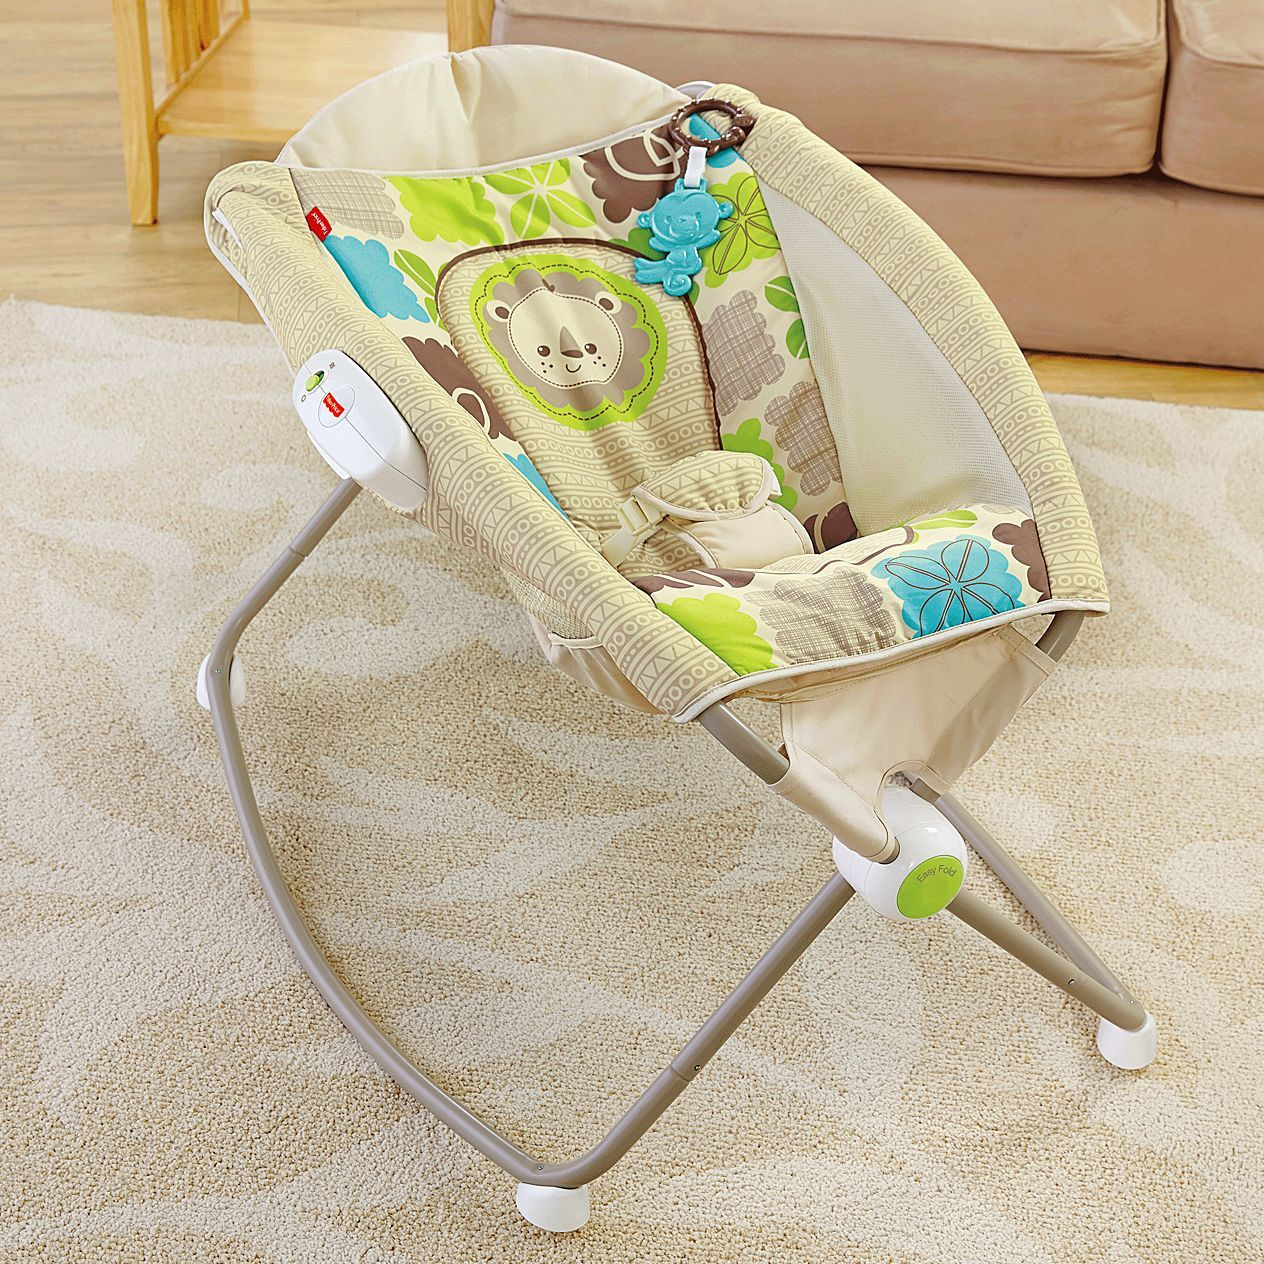 Fisher Price Newborn Rock N Play Sleeper Bct91 You Are My Everything Yame Inc